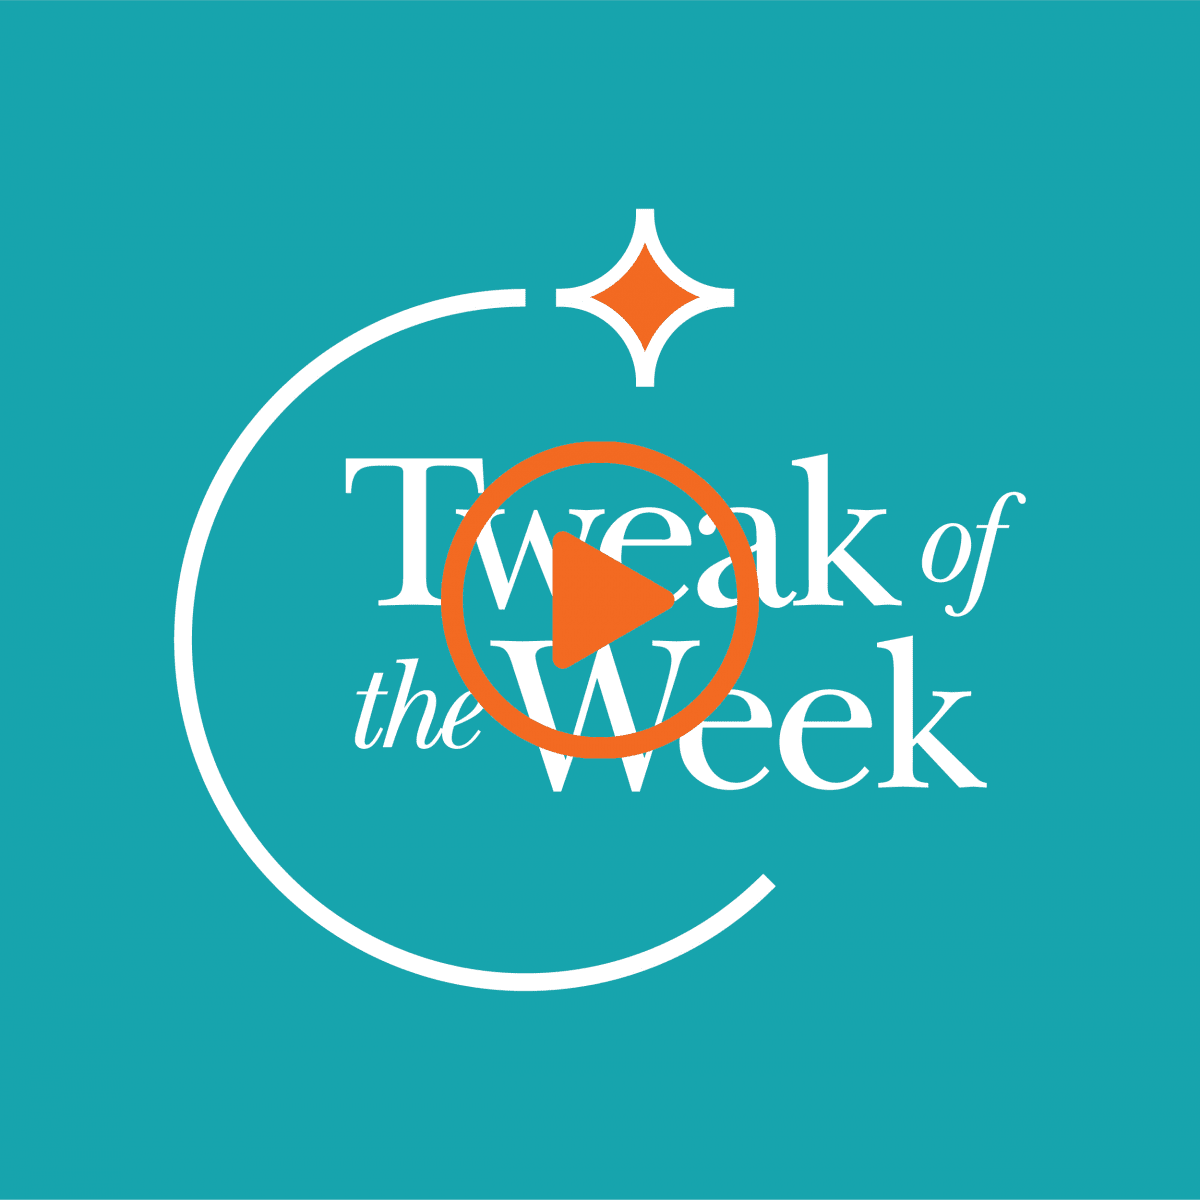 tweak of the week graphic